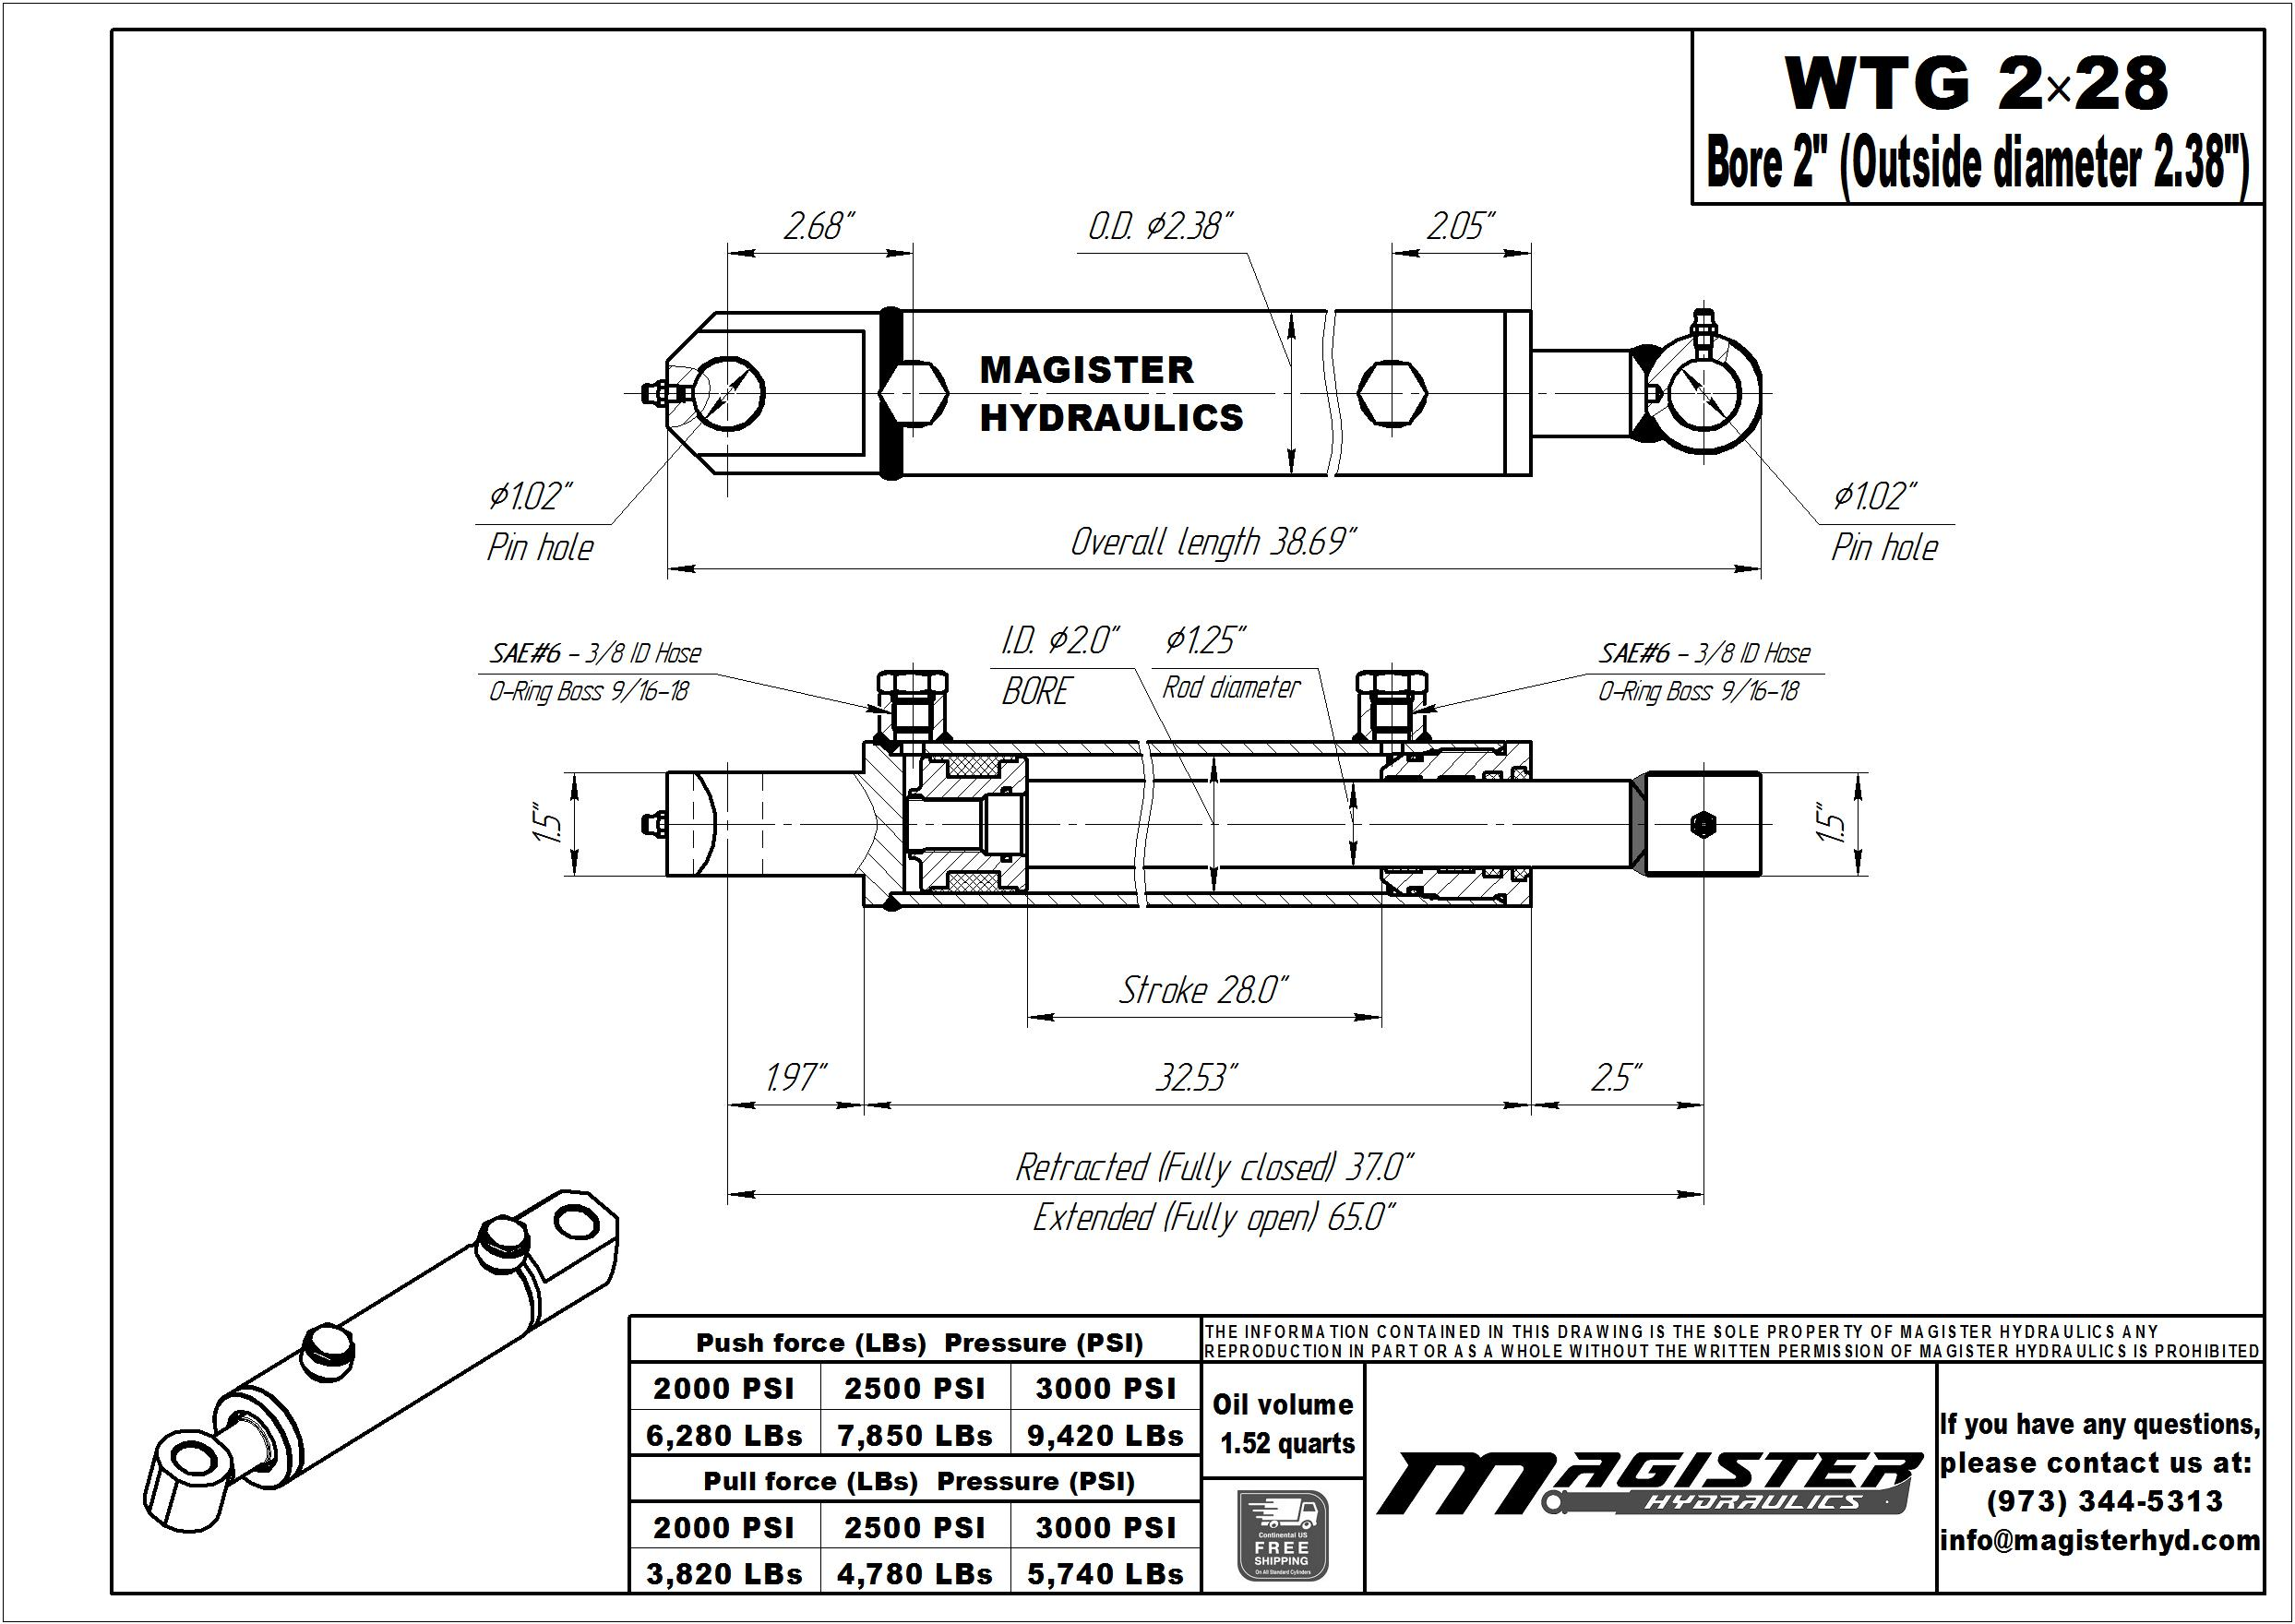 2 bore x 28 stroke hydraulic cylinder, welded tang double acting cylinder | Magister Hydraulics